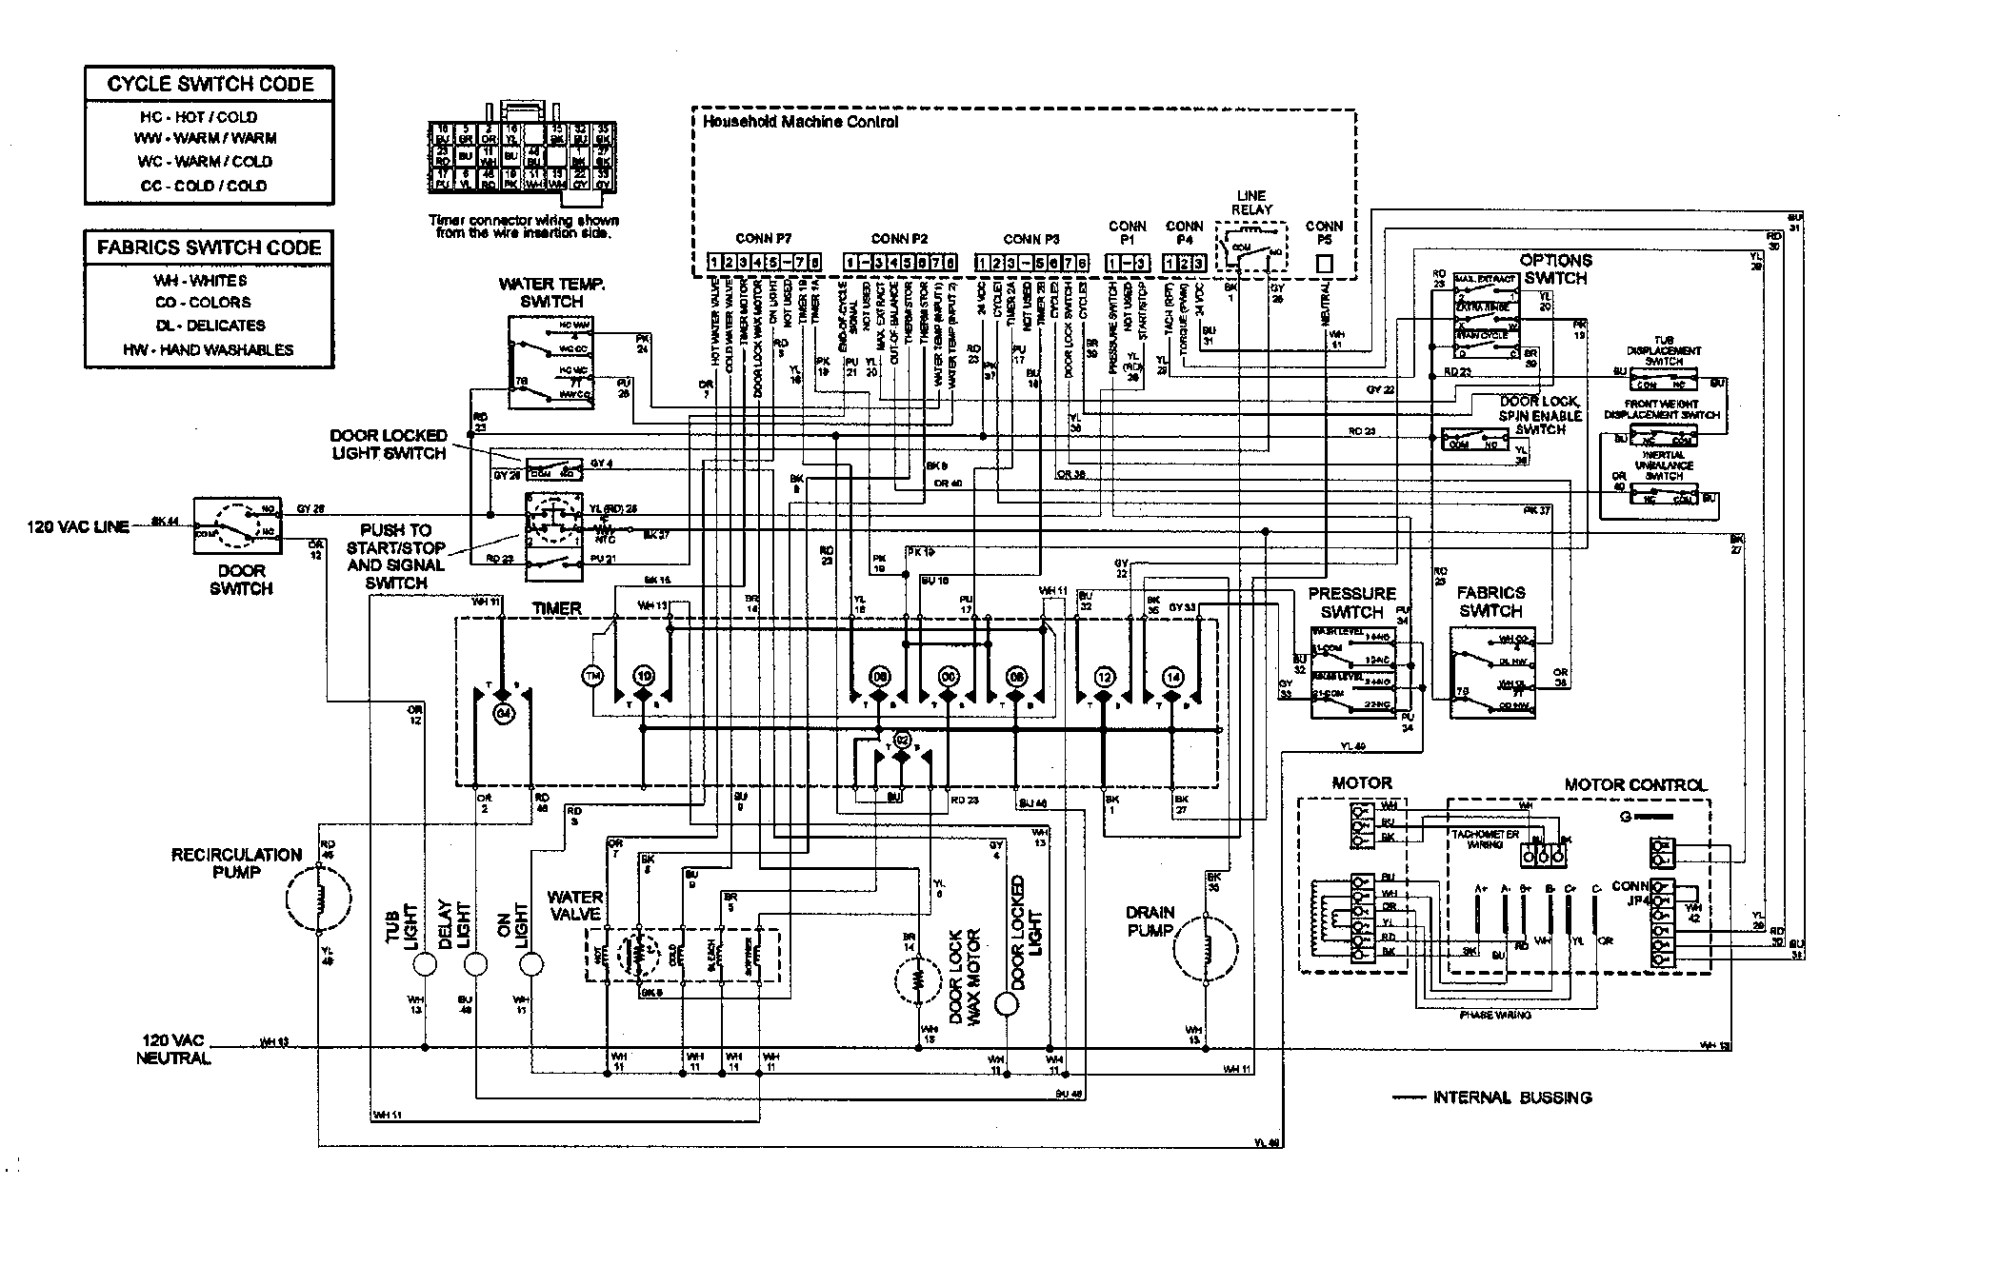 hight resolution of maytag dishwasher wiring schematic wiring diagram blogs maytag dryer motor wiring maytag wiring schematics